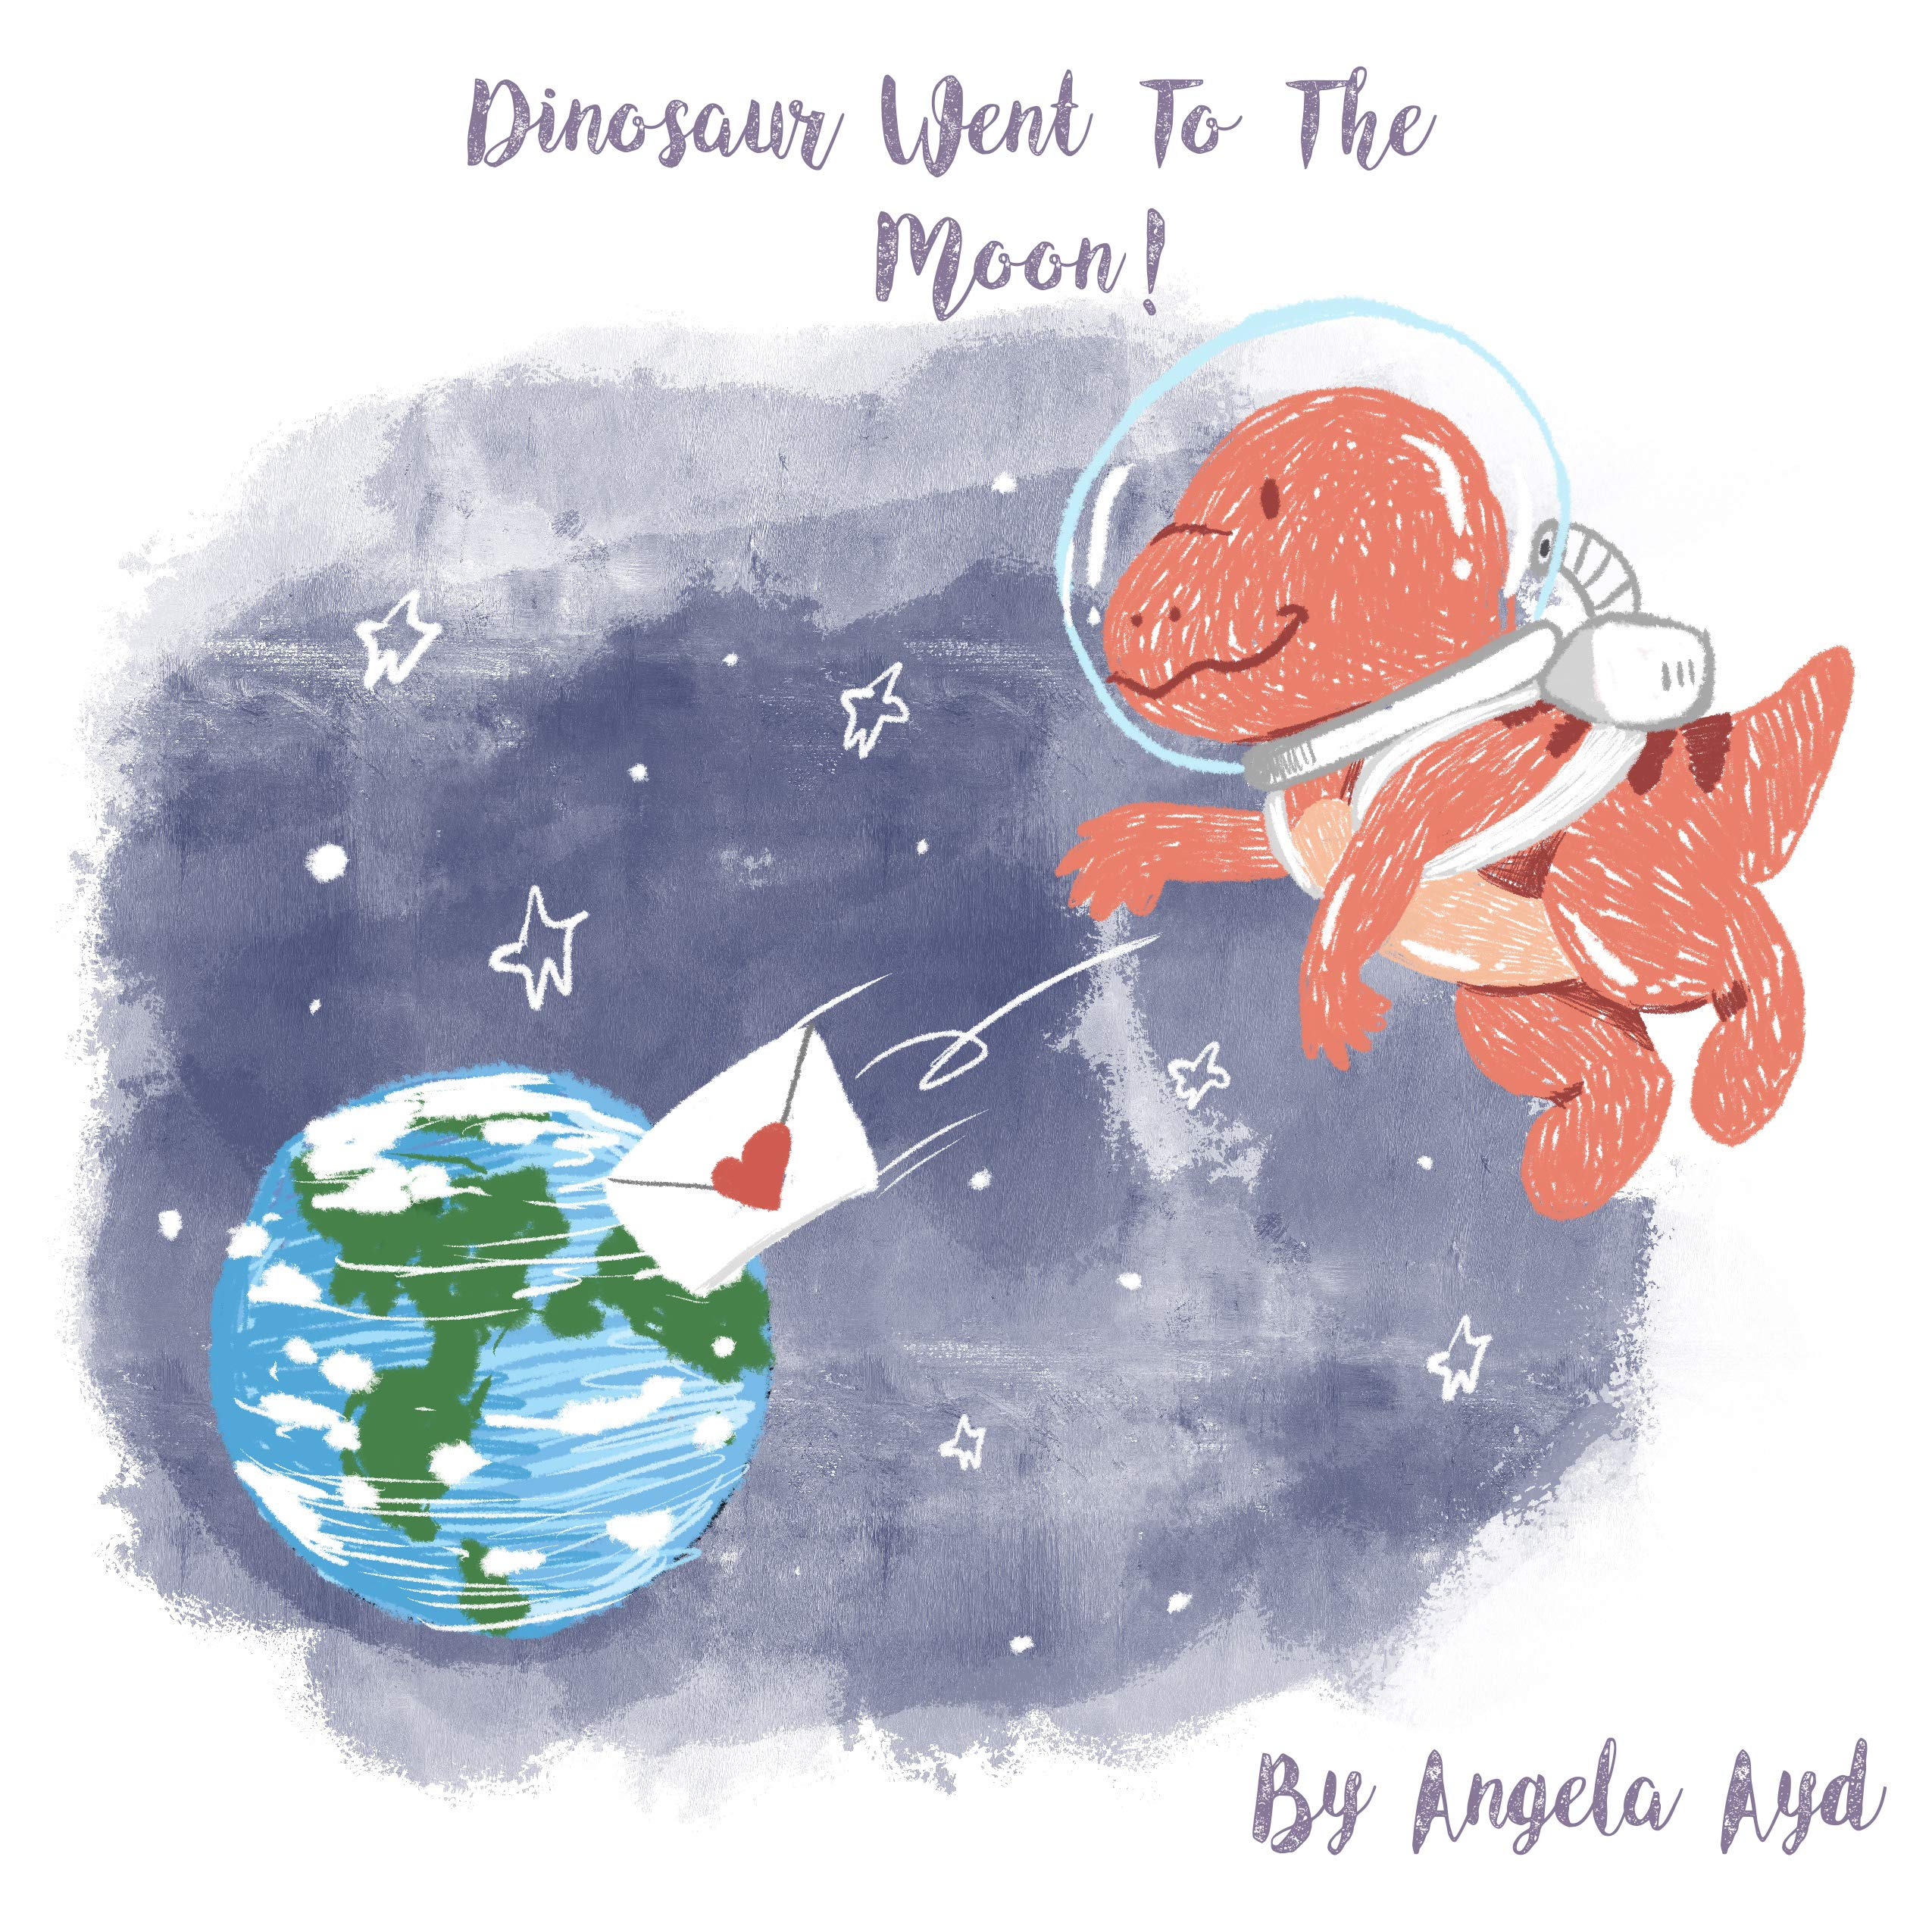 Dinosaur Went To The Moon!